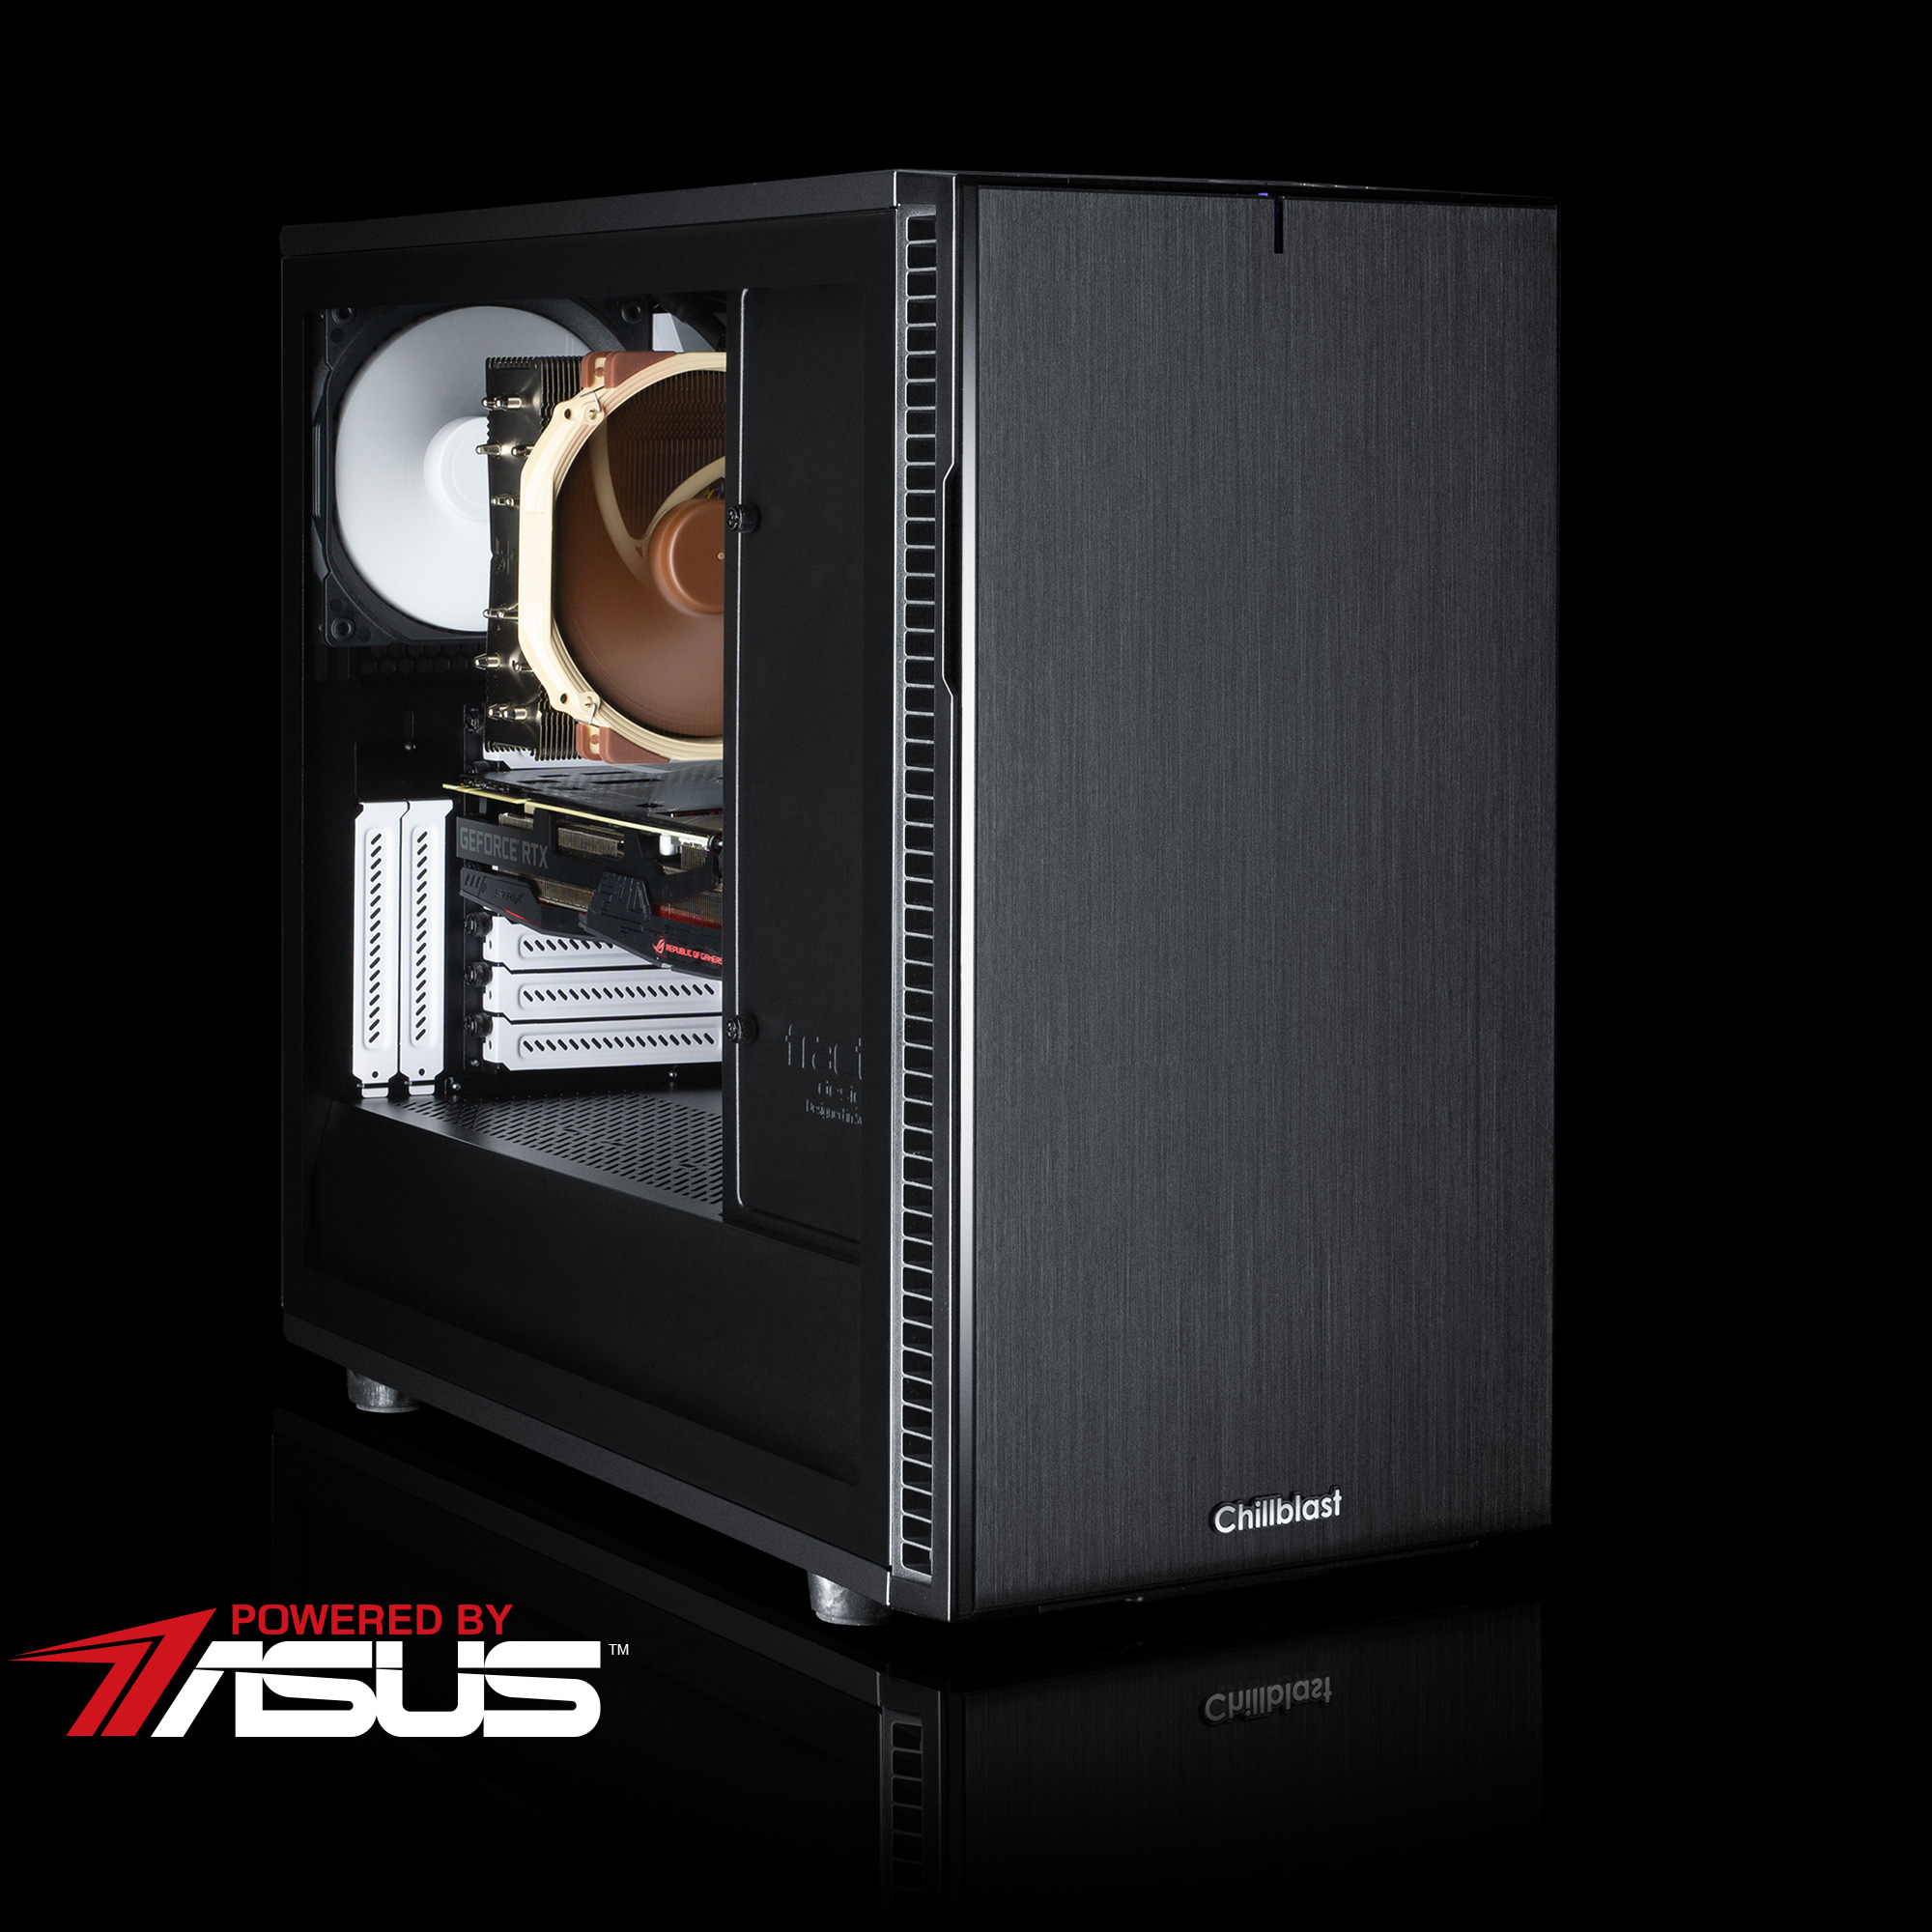 Image of the pre-built Chillblast Serenity Elite Gaming PC against a dark background.